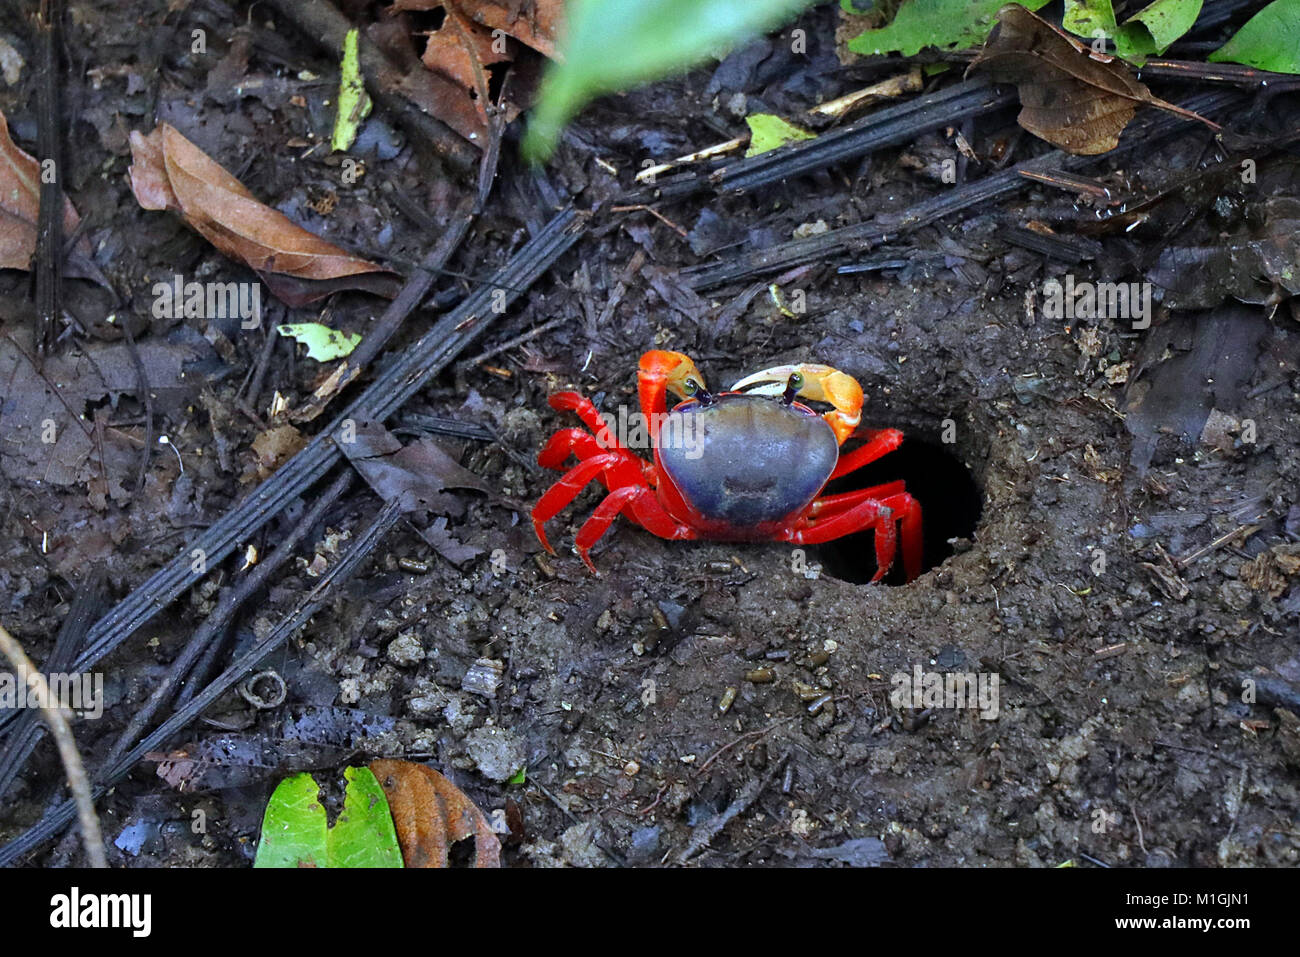 A Pacific Red Land Crab (Gecarcinus quadratus) emerging from a hole in the rainforest floor in the Manuel Antonio Stock Photo